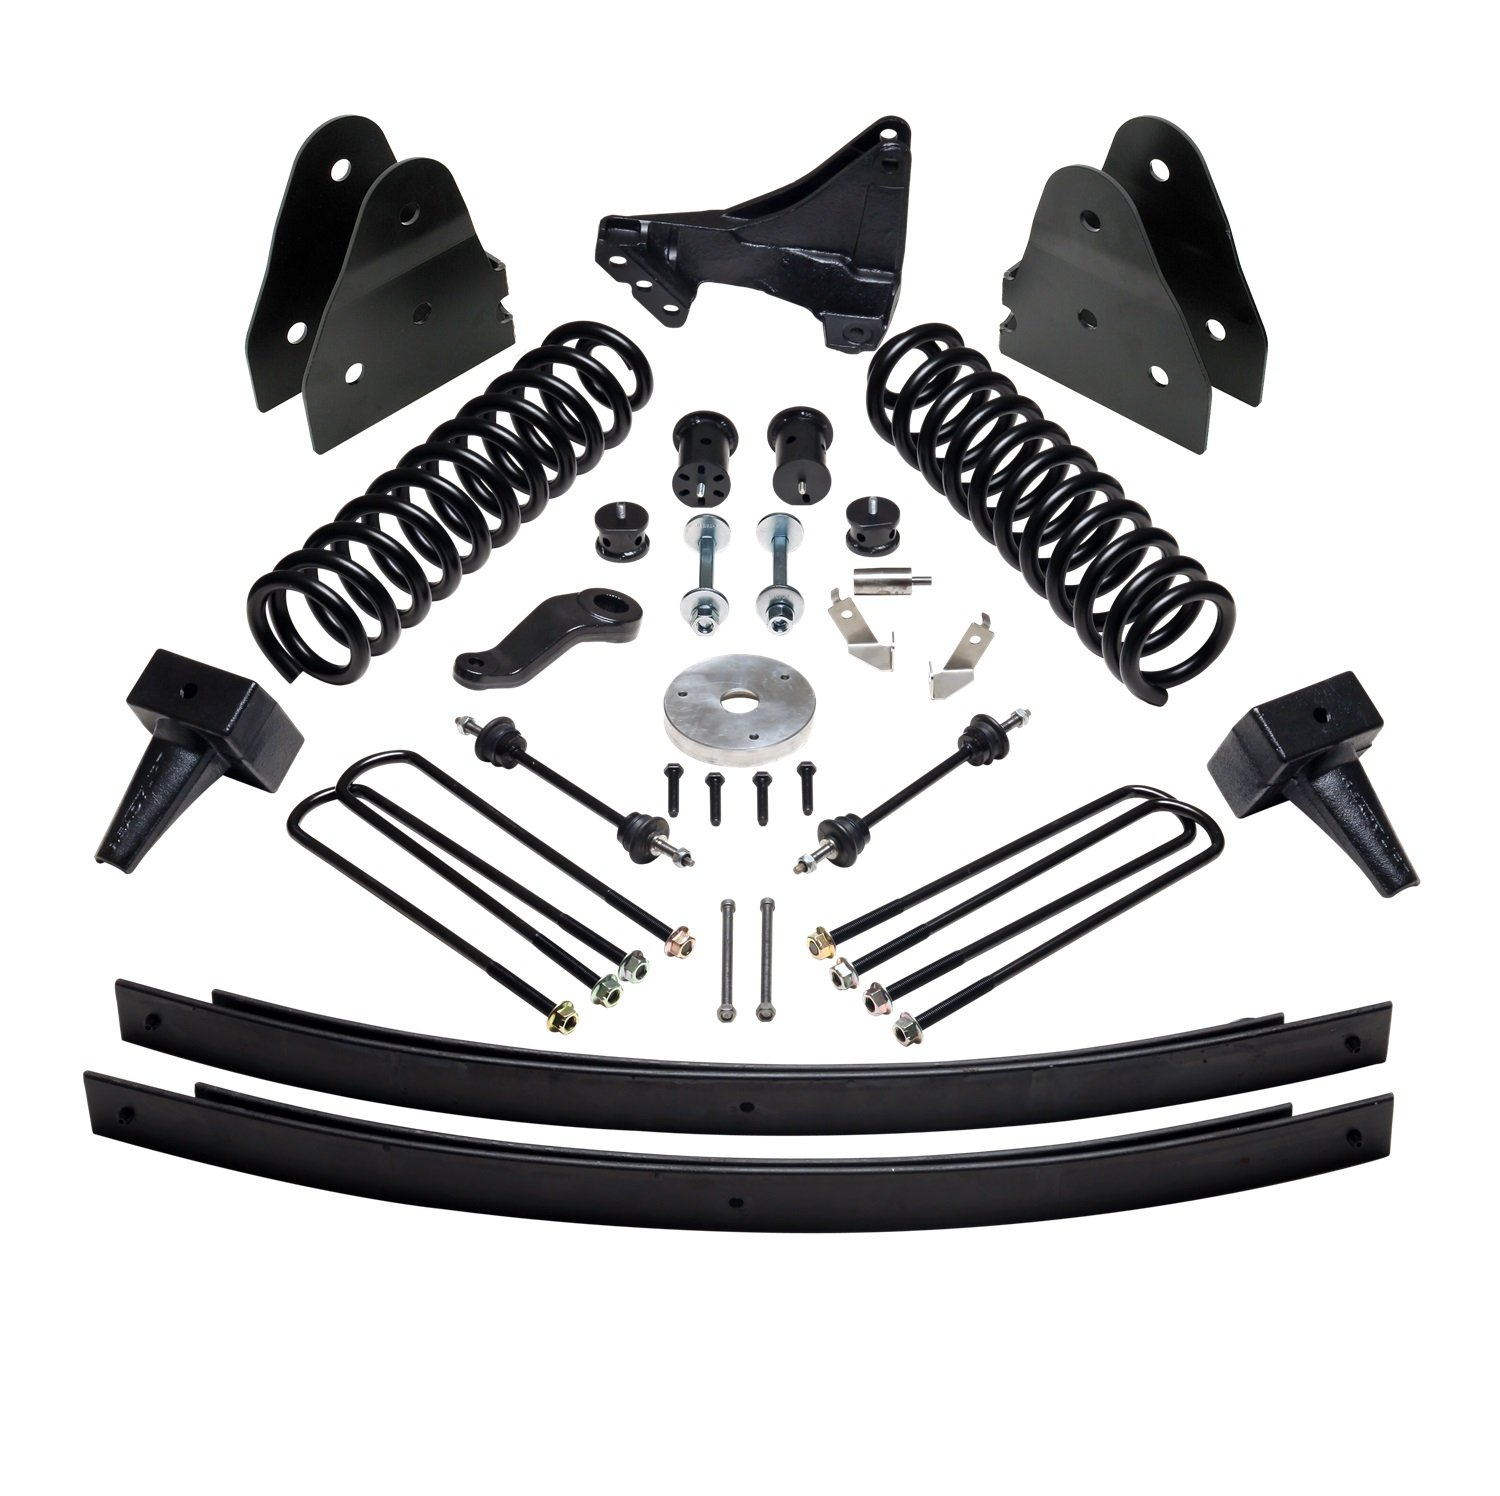 ReadyLift 49-2000 Series-1 5' Off-Road Suspension Lift Kit